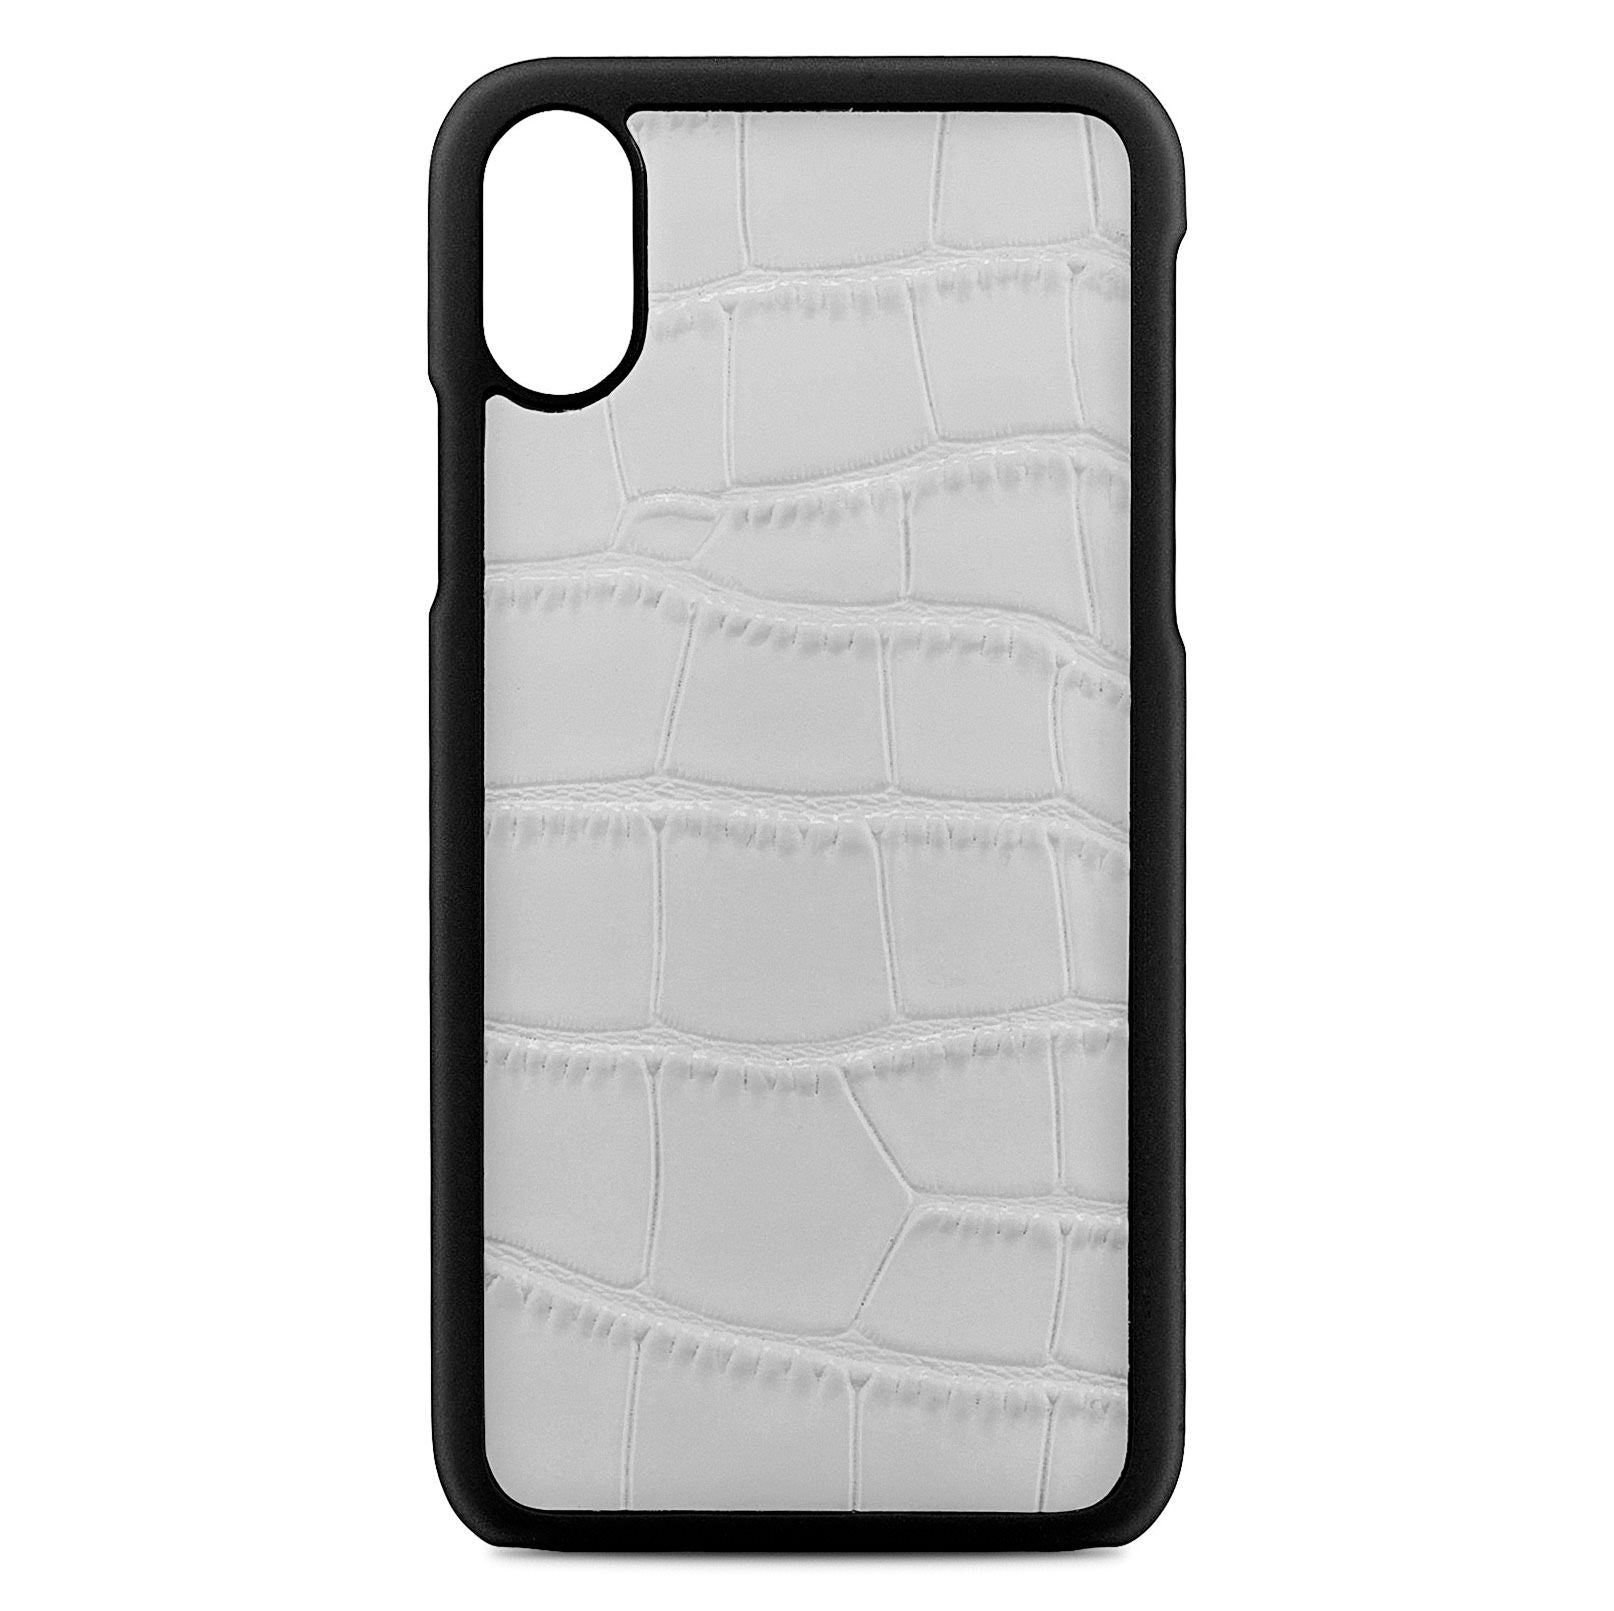 Blank Personalised Grey Croc Leather iPhone X Case